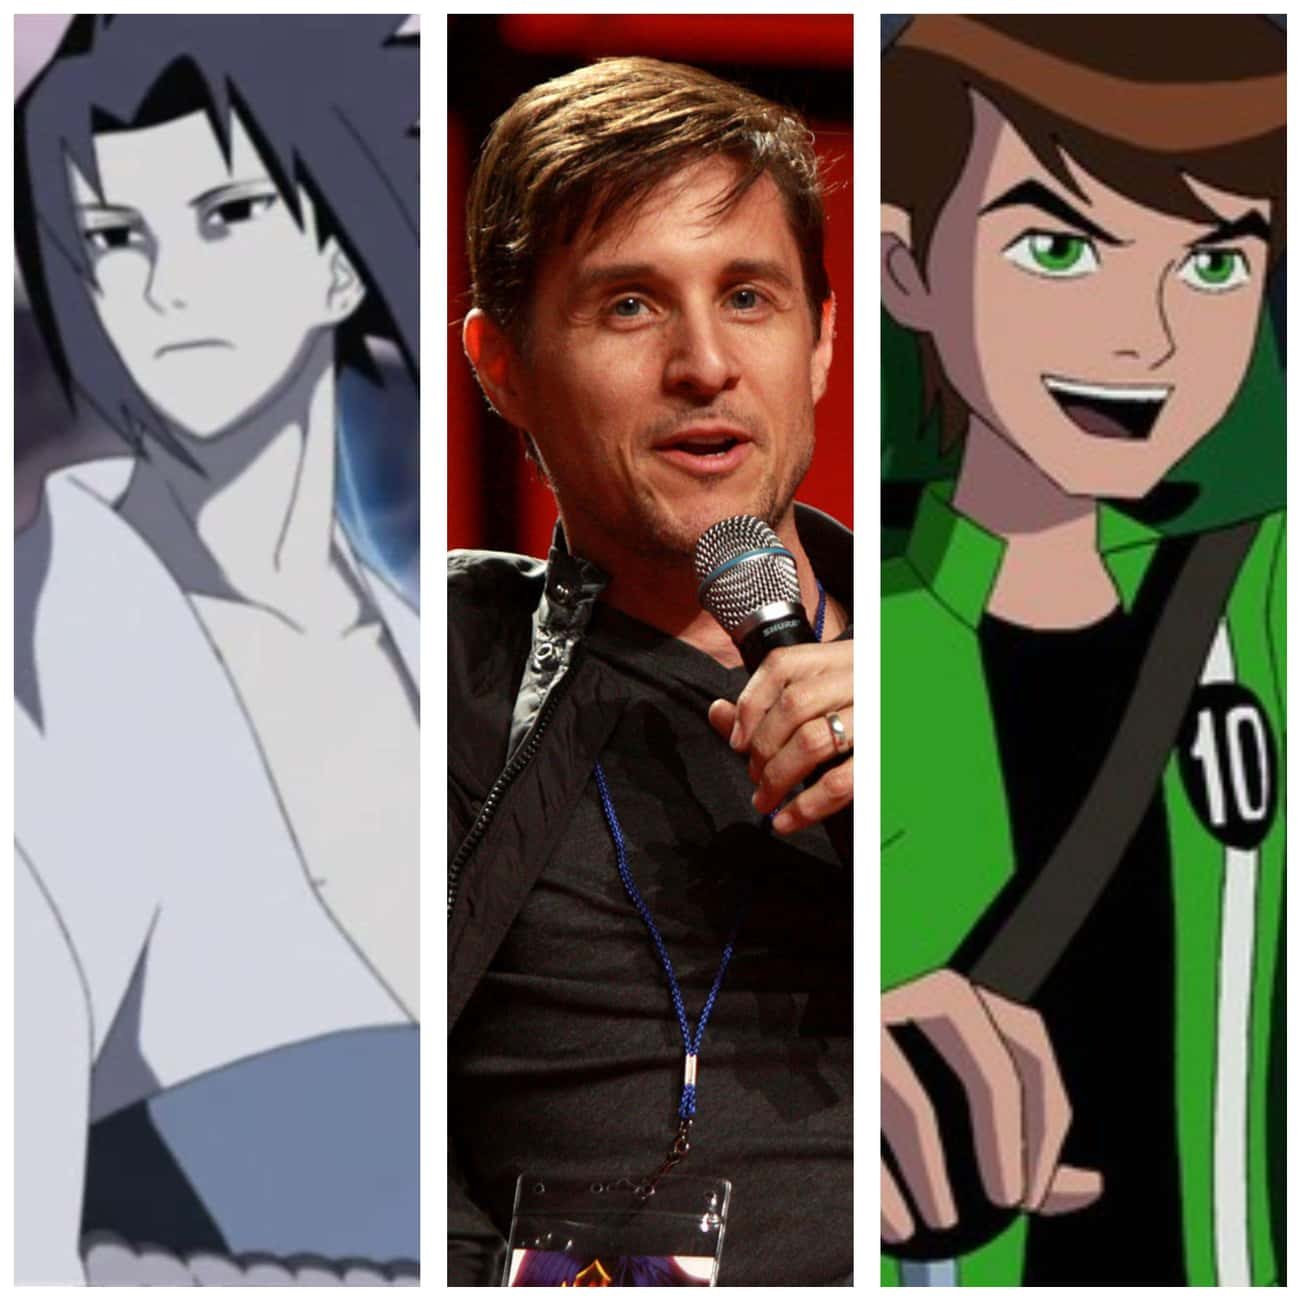 Yuri Lowenthal From 'Naruto' A is listed (or ranked) 2 on the list 15 Times Anime Voice Actors Appeared In Western Cartoons